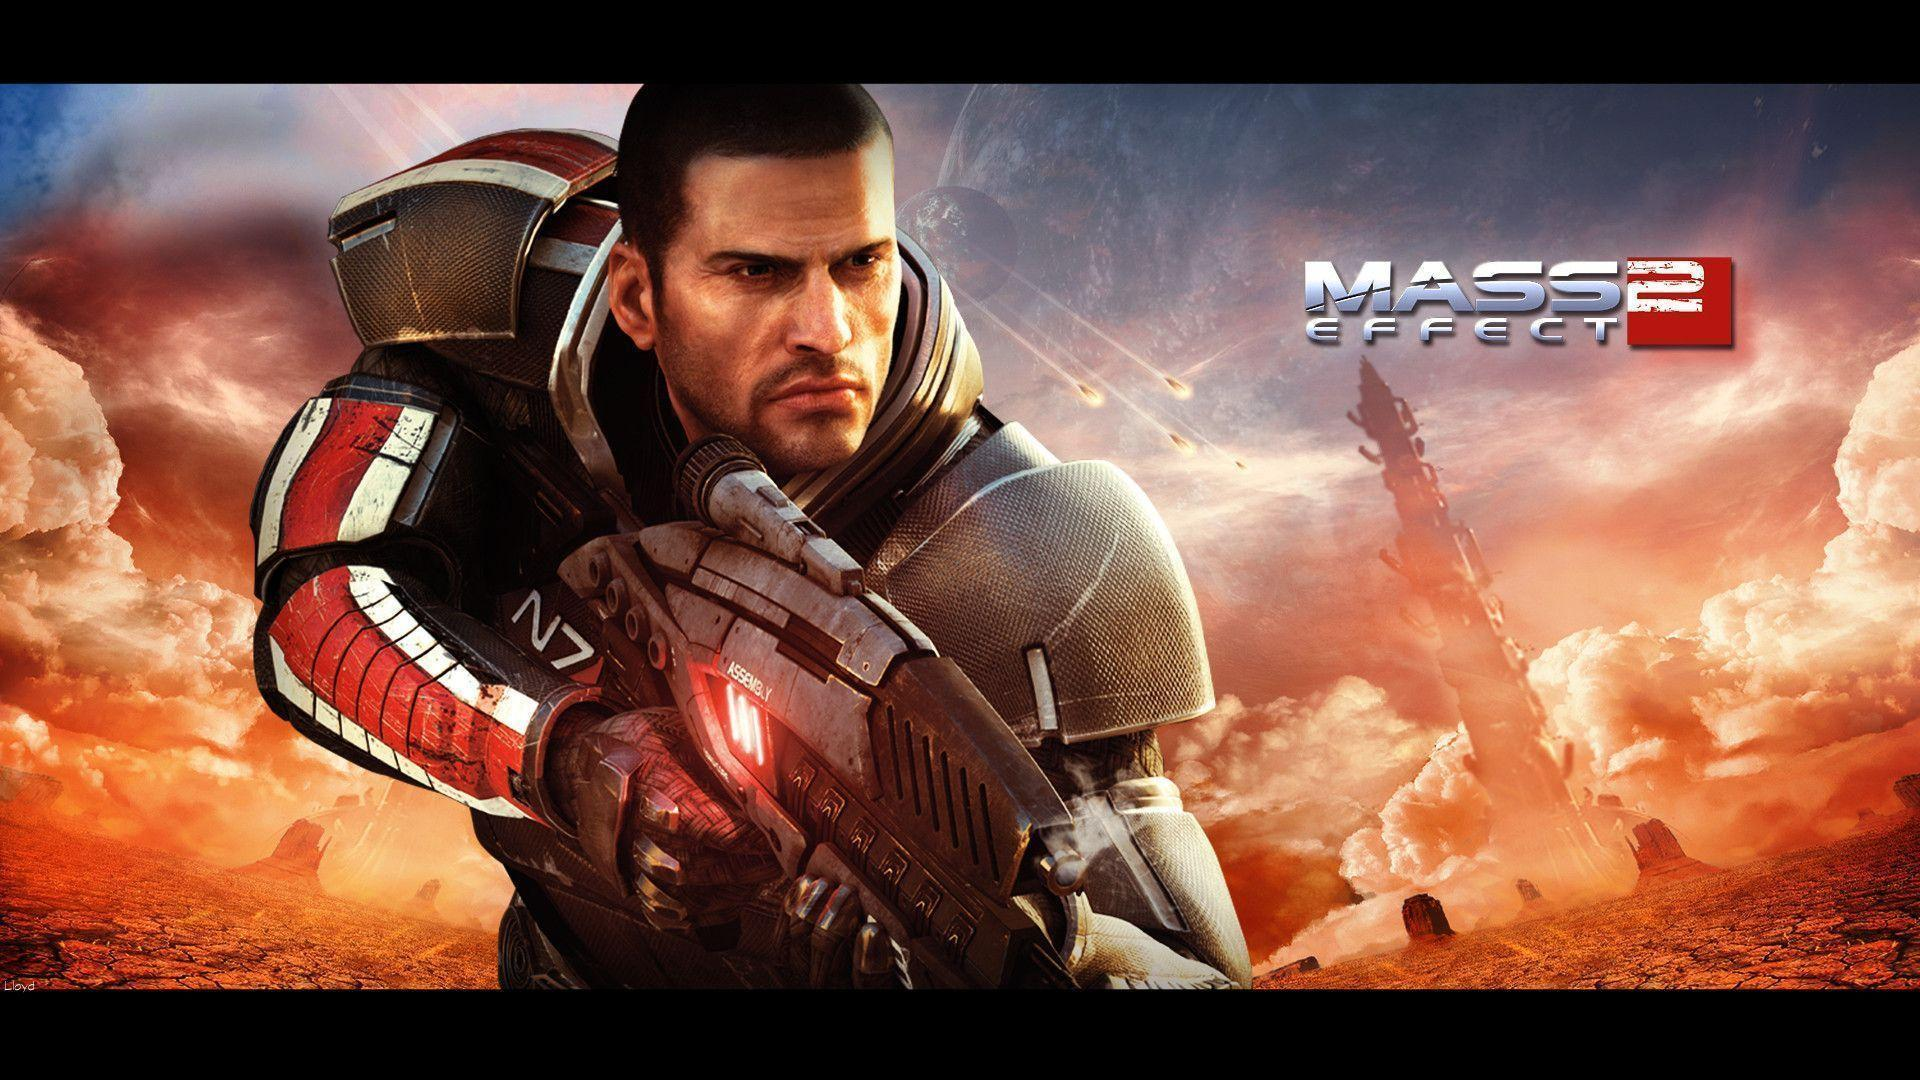 Download Games Mass Effect Wallpapers 1920x1080